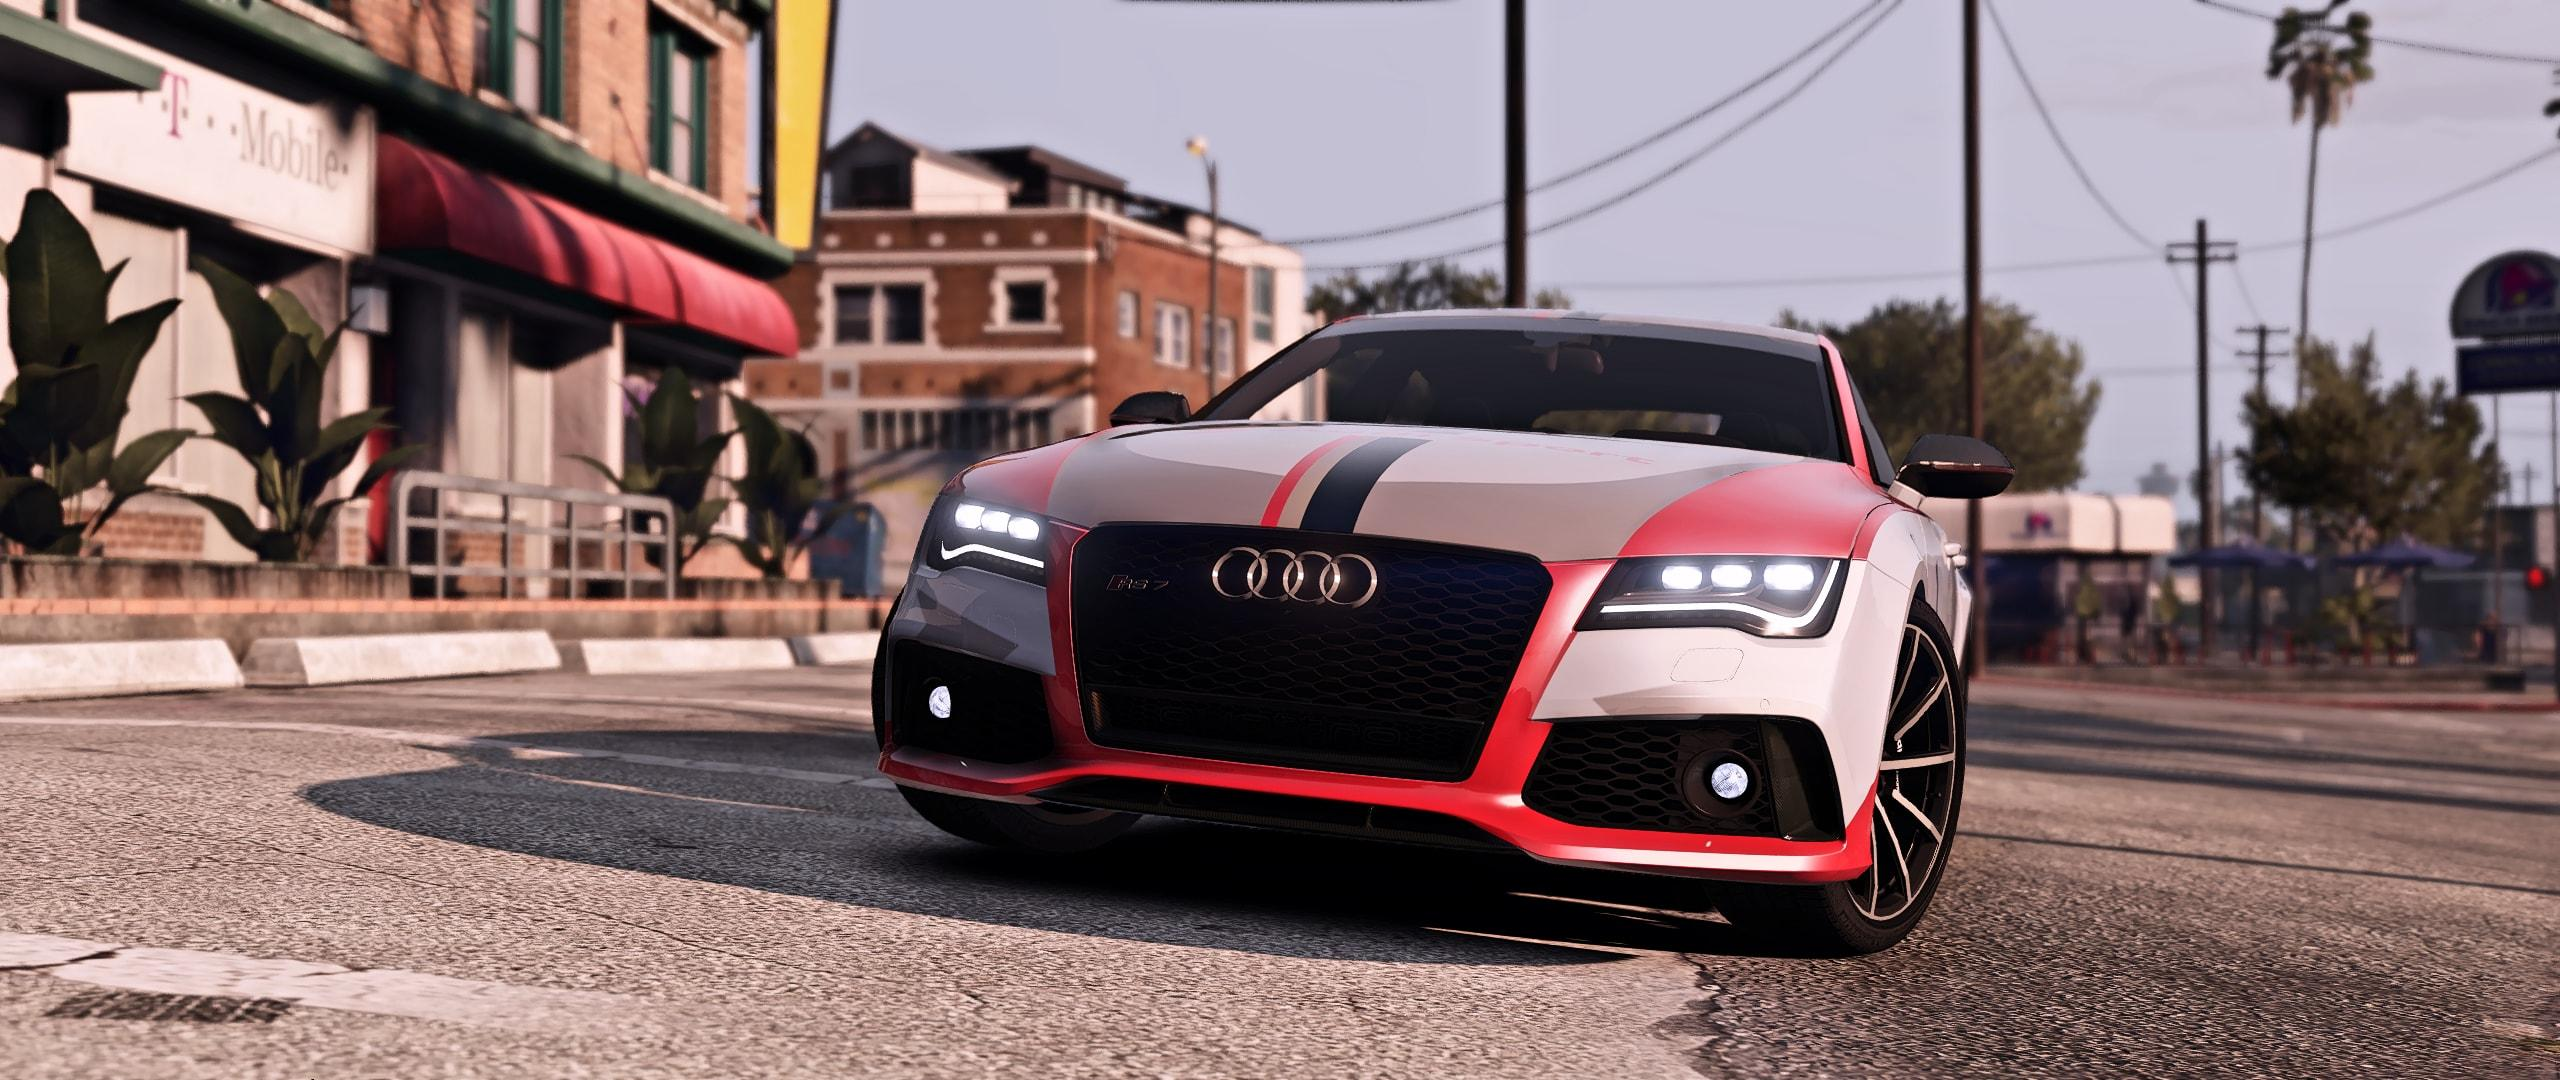 Rs Style Livery For Tk0wnz Audi Rs7 8k 4k Gta5 Mods Com